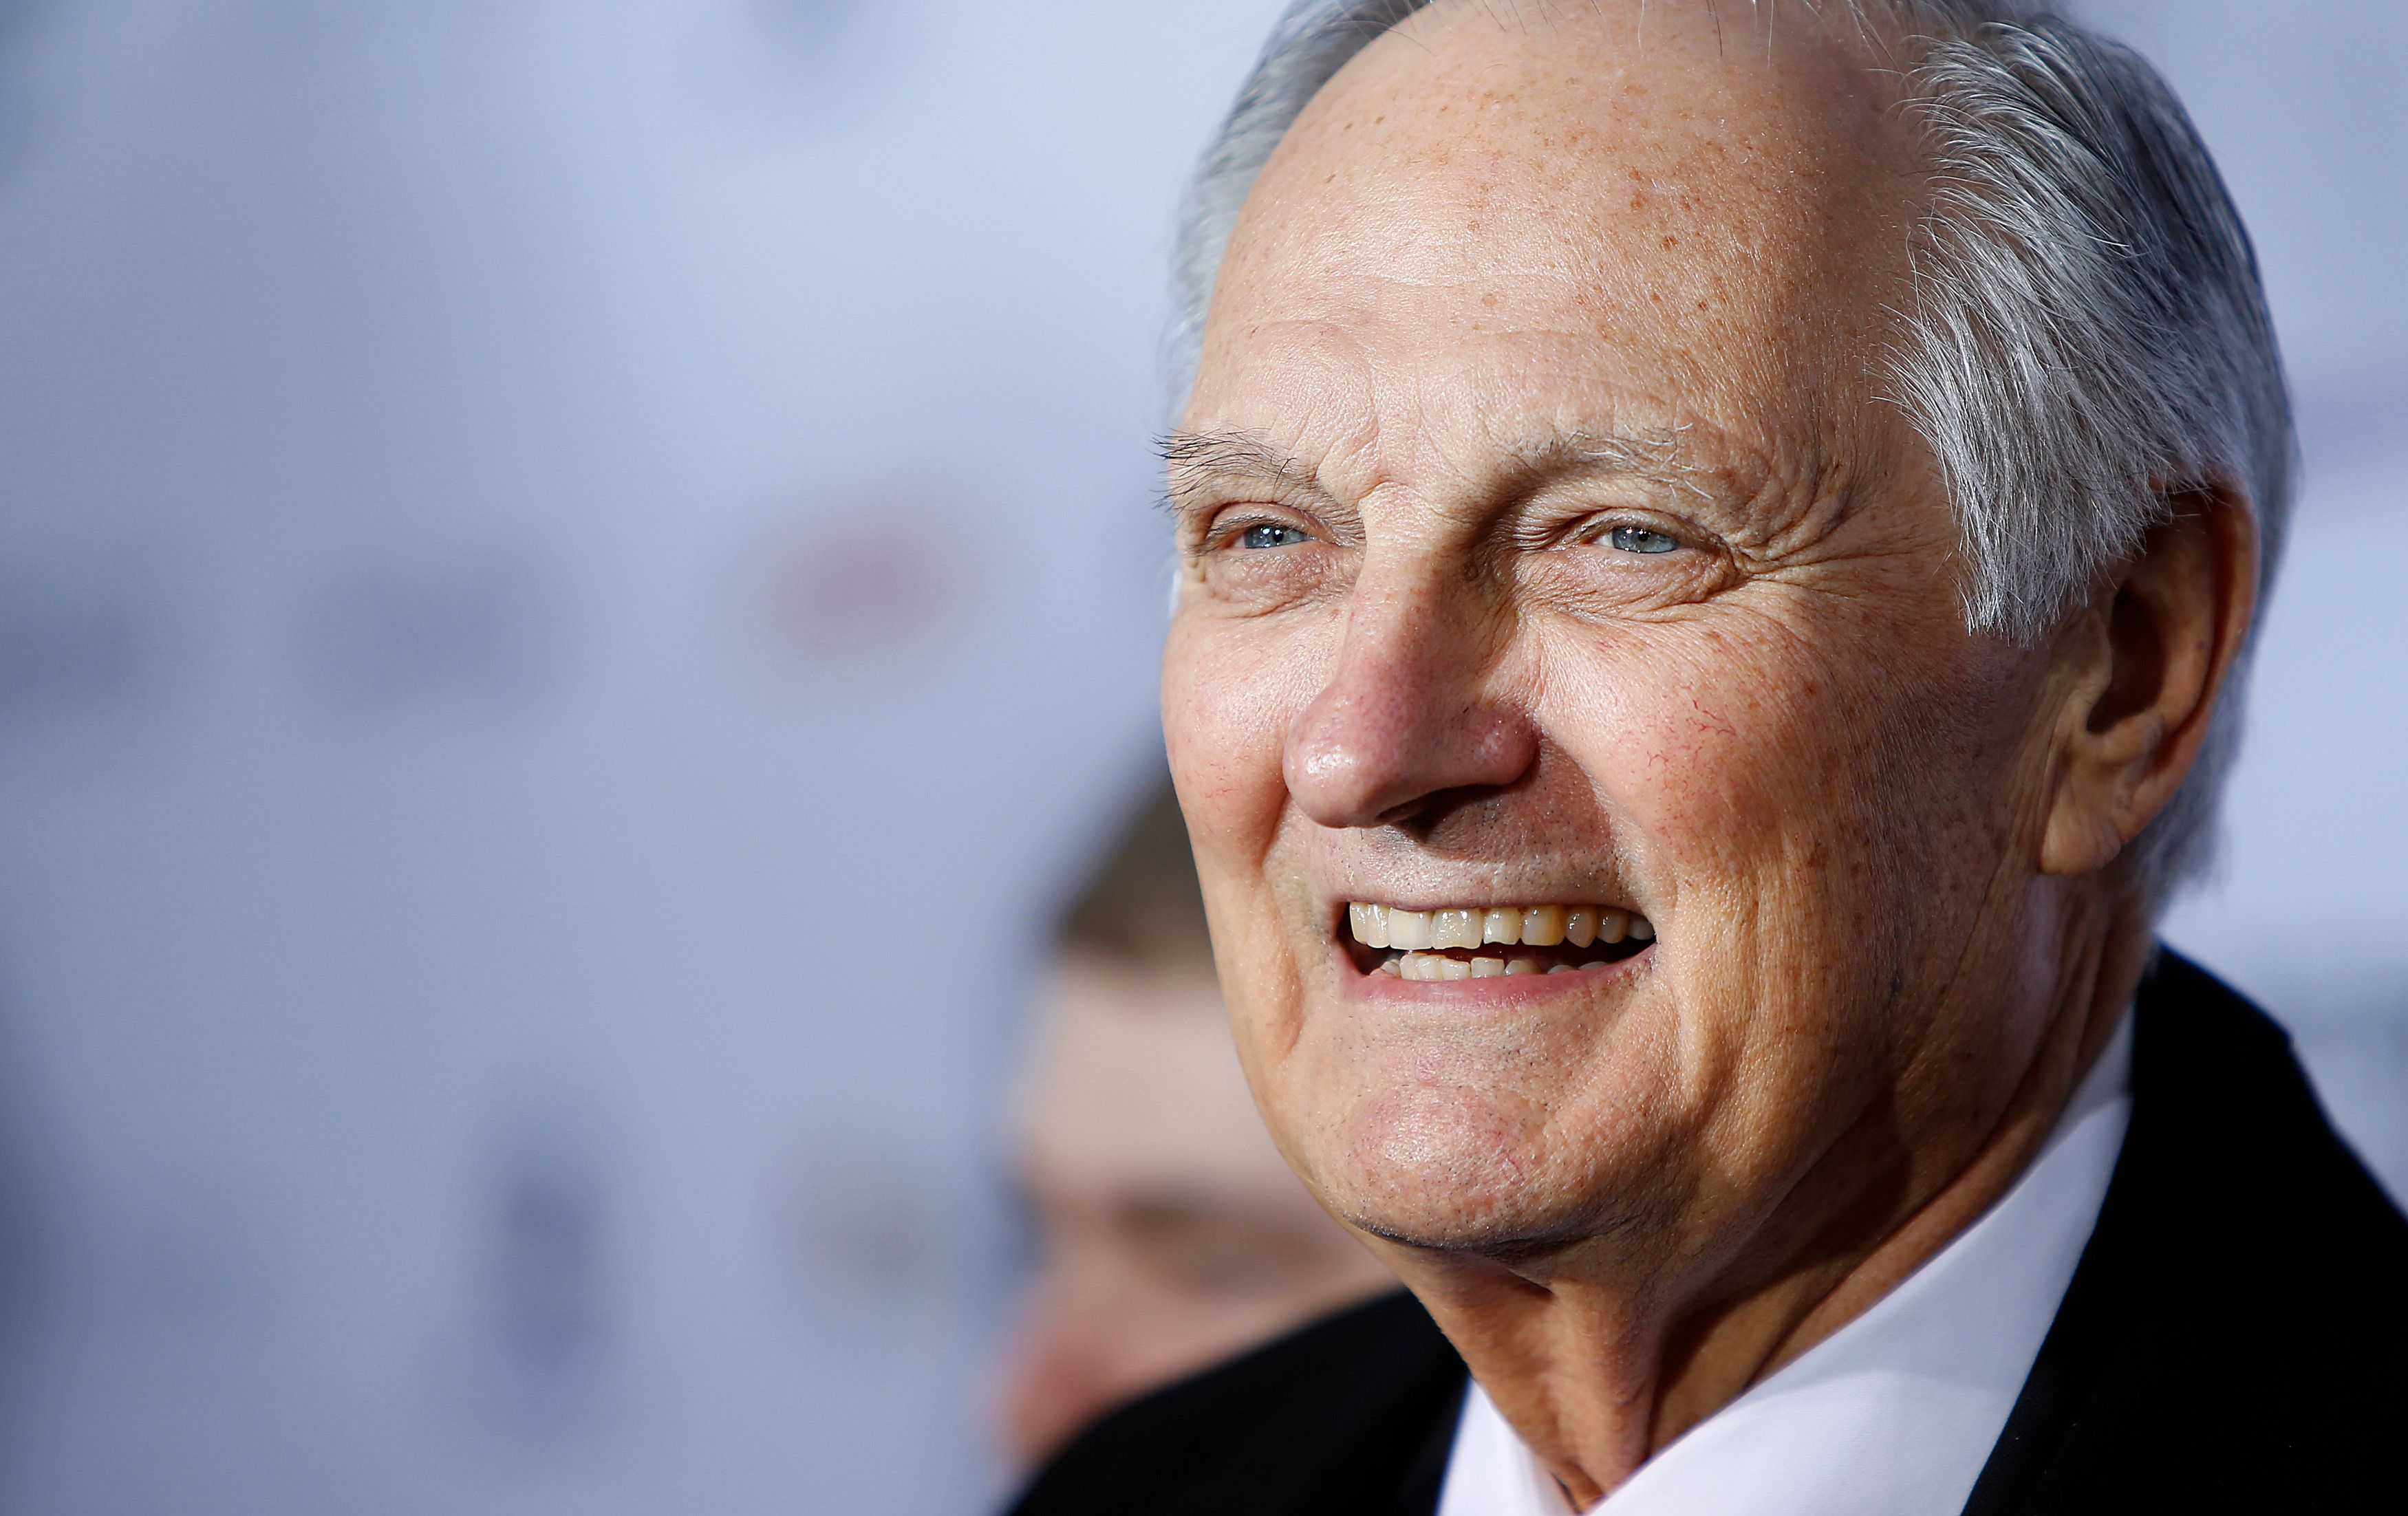 Actor Alan Alda says he has Parkinson's disease